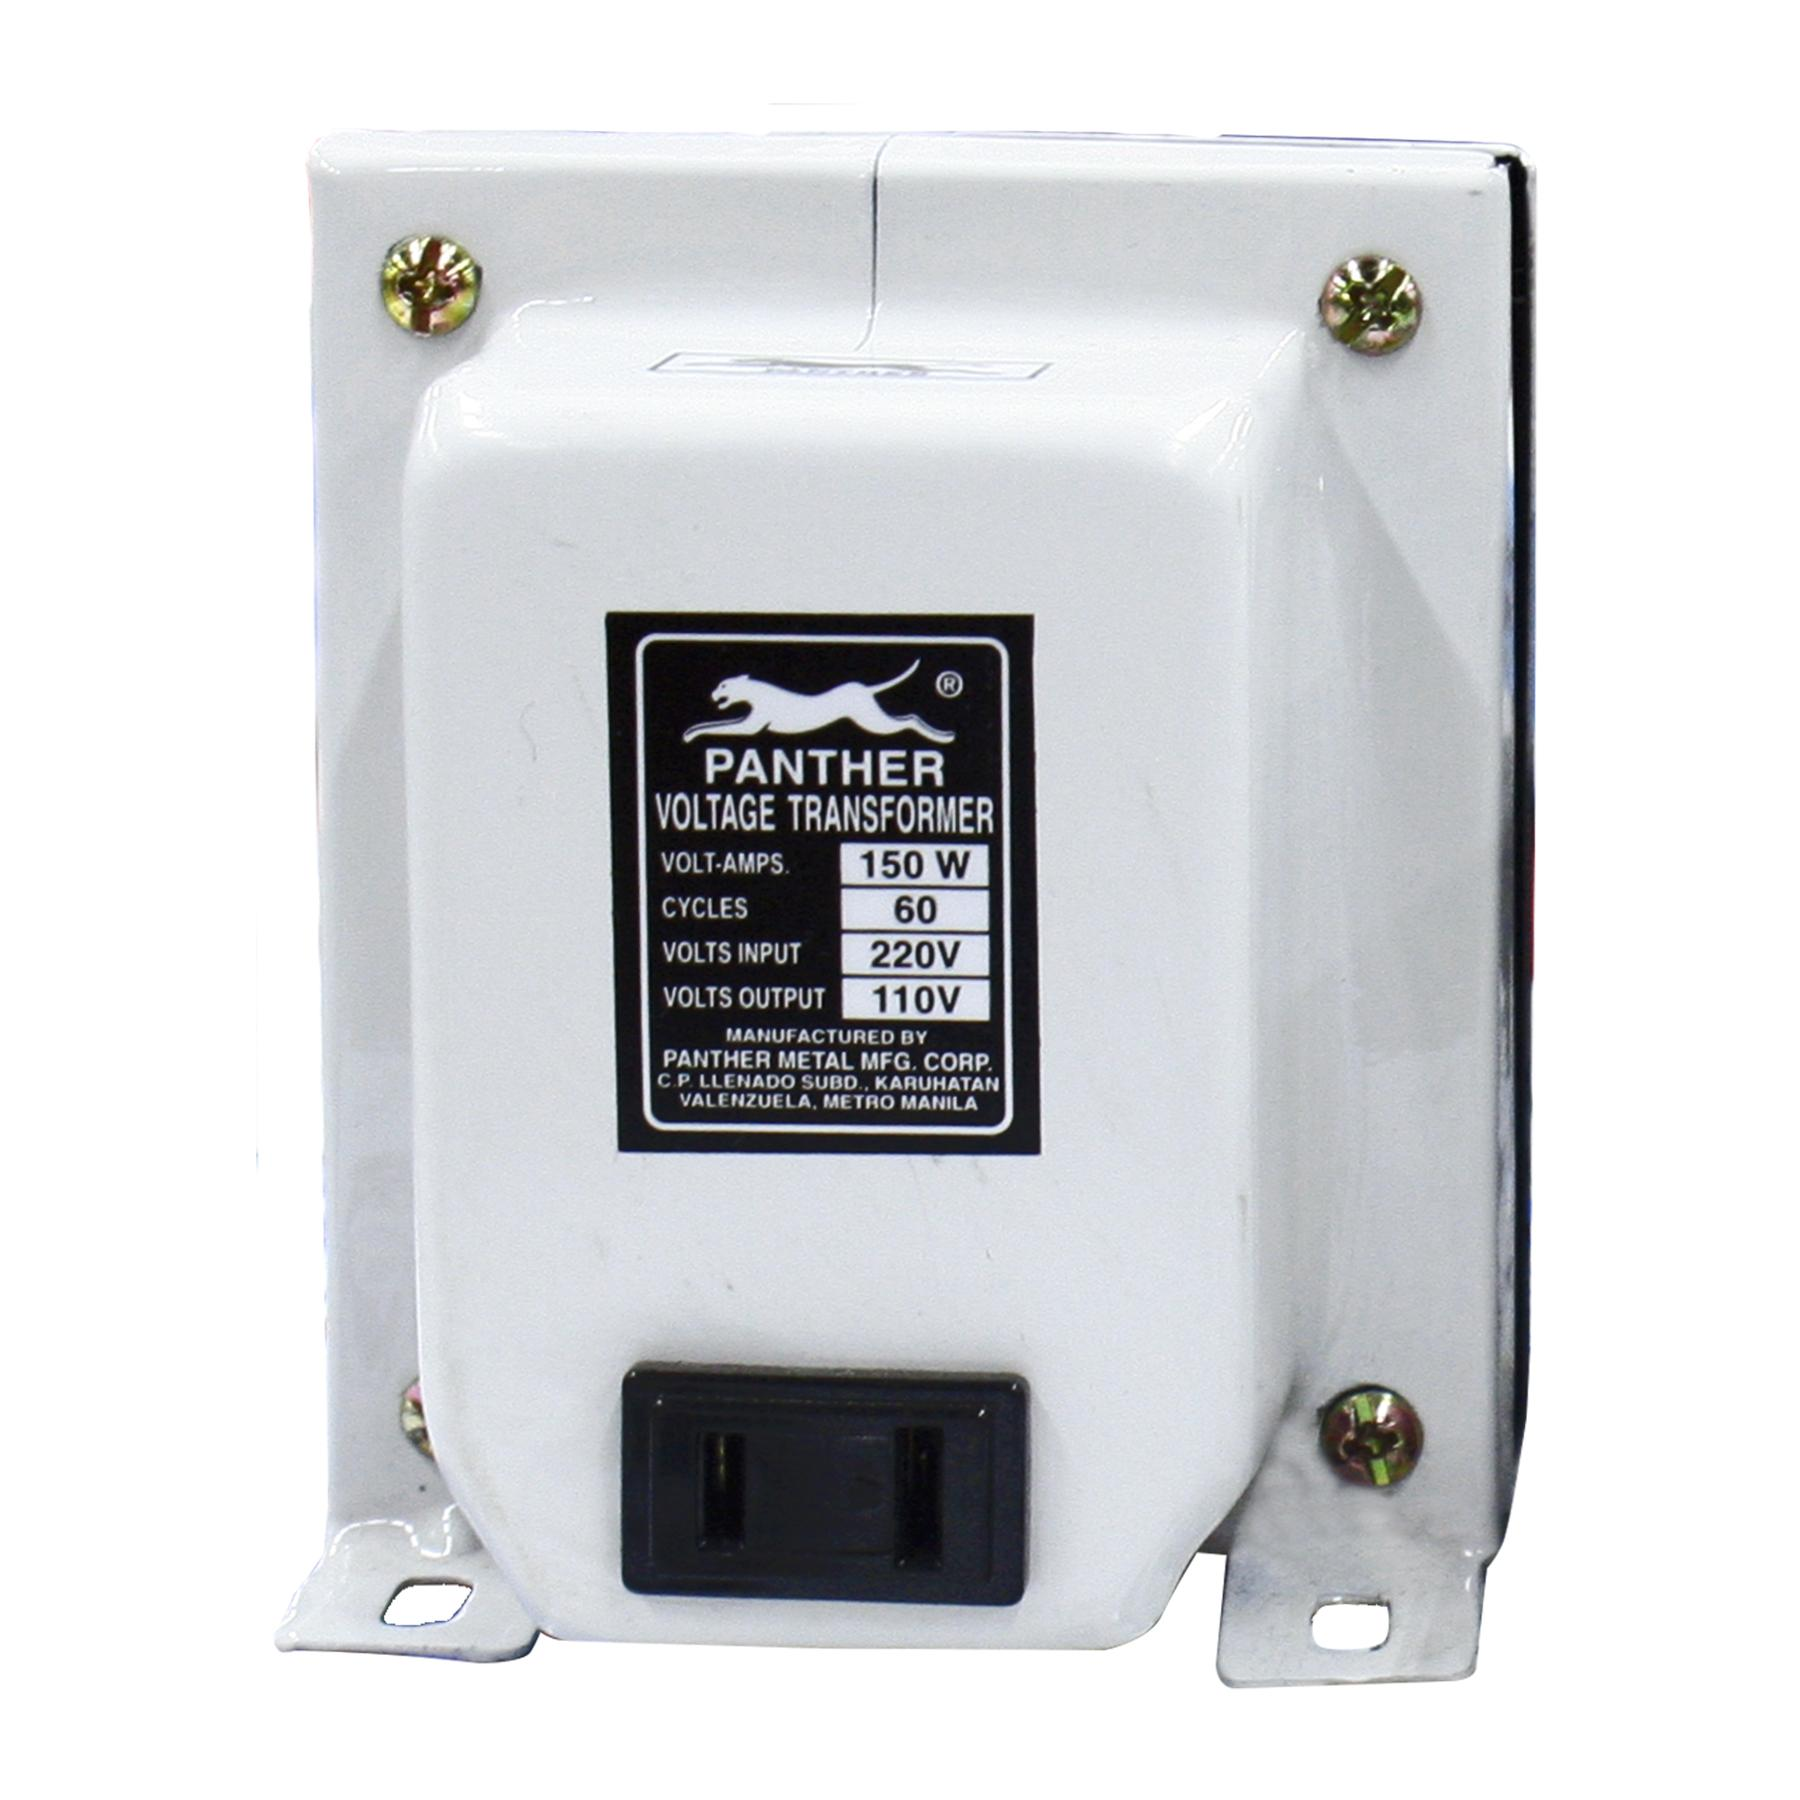 Panther Step-Down Transformer 150W Philippines